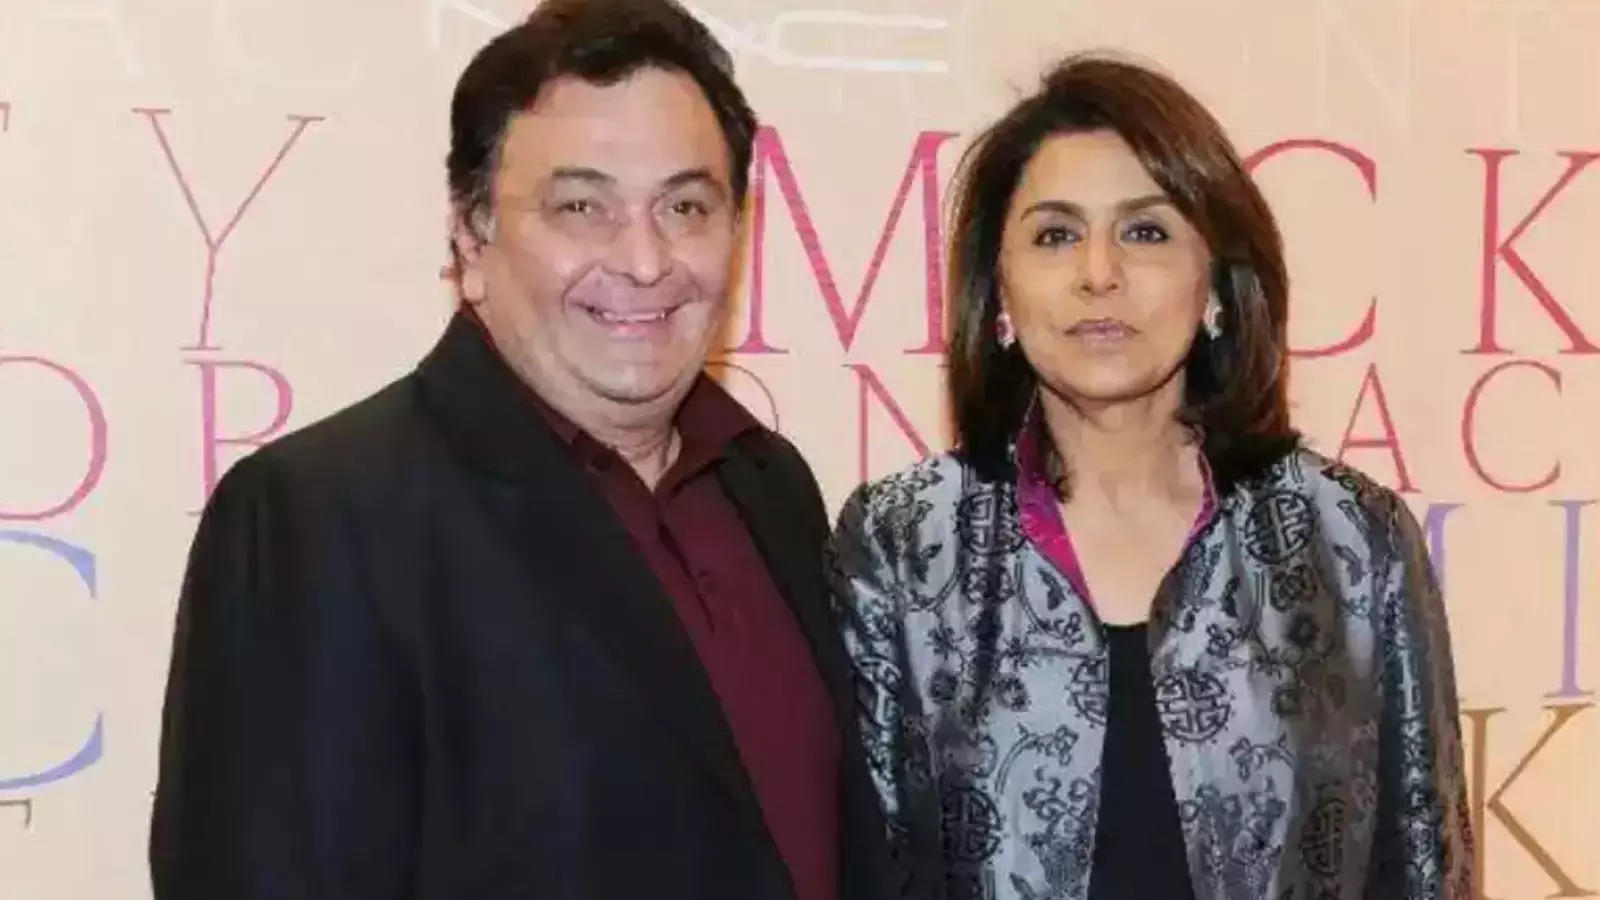 Neetu Kapoor shares memories of 'highs' and lows' from Rishi Kapoor's last  few years: He taught me to be strong | Hindi Movie News - Times of India